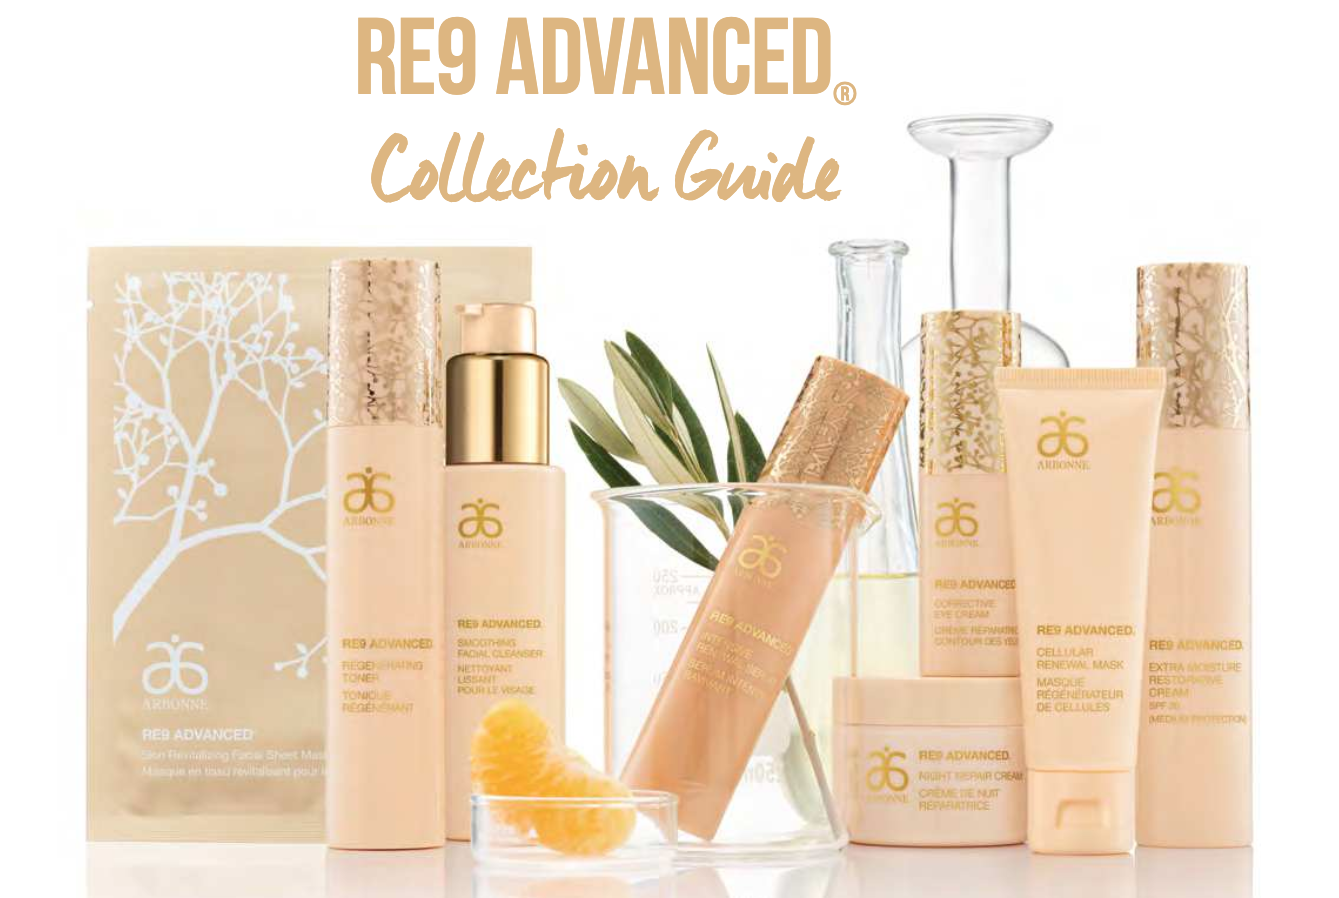 Arbonne RE9 Advanced Collection